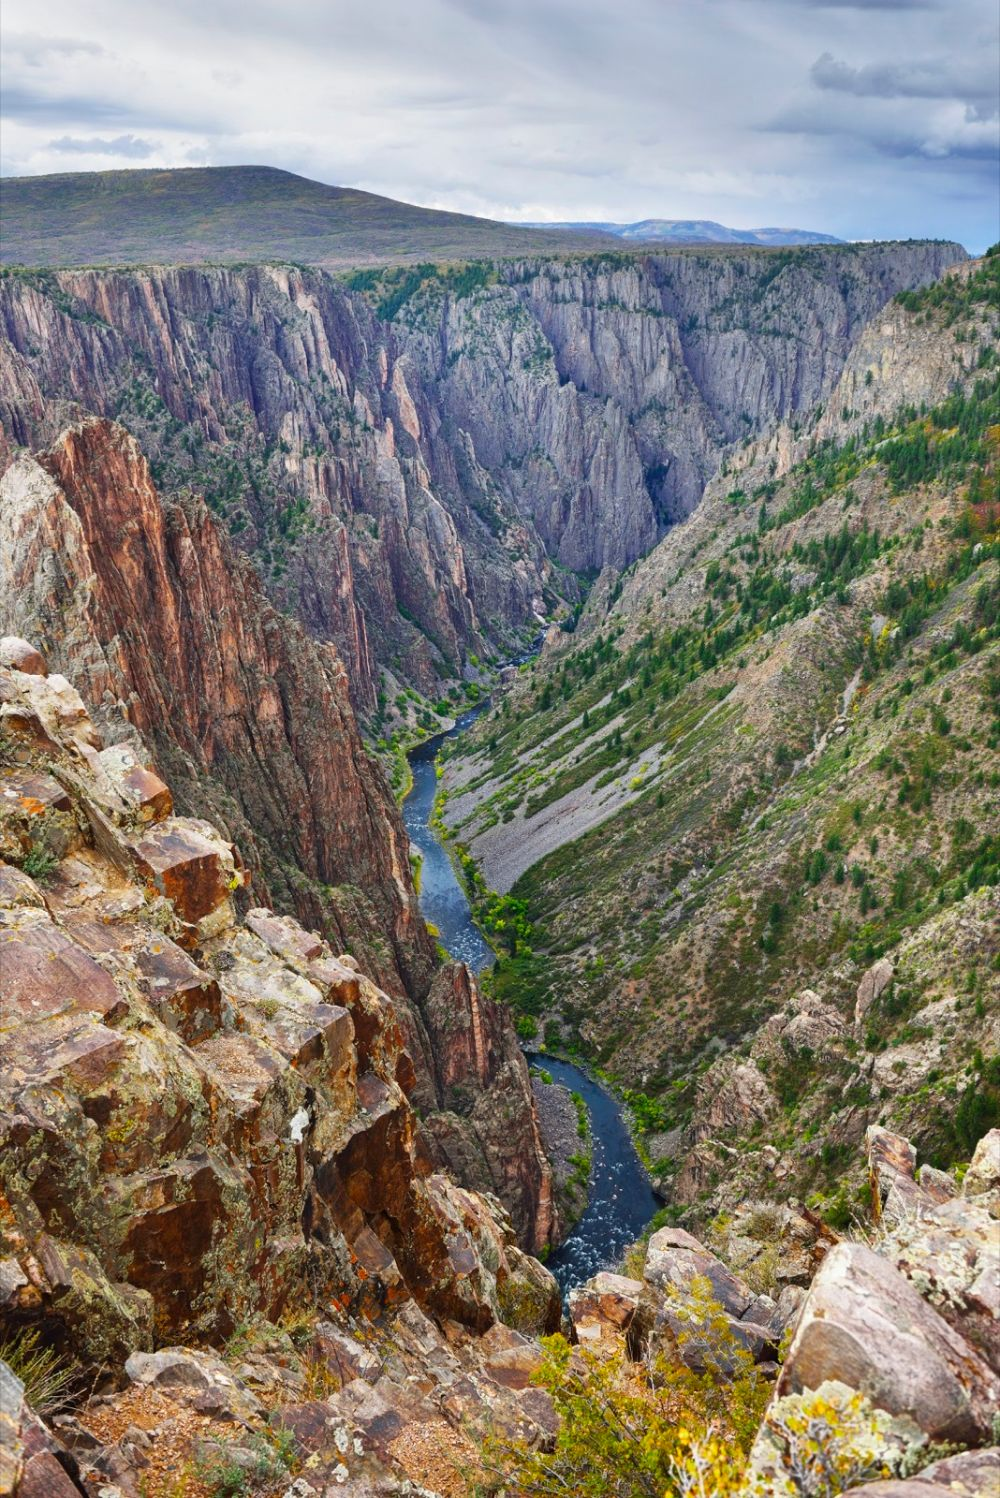 51 affordable discoveries across America | Budget Travel